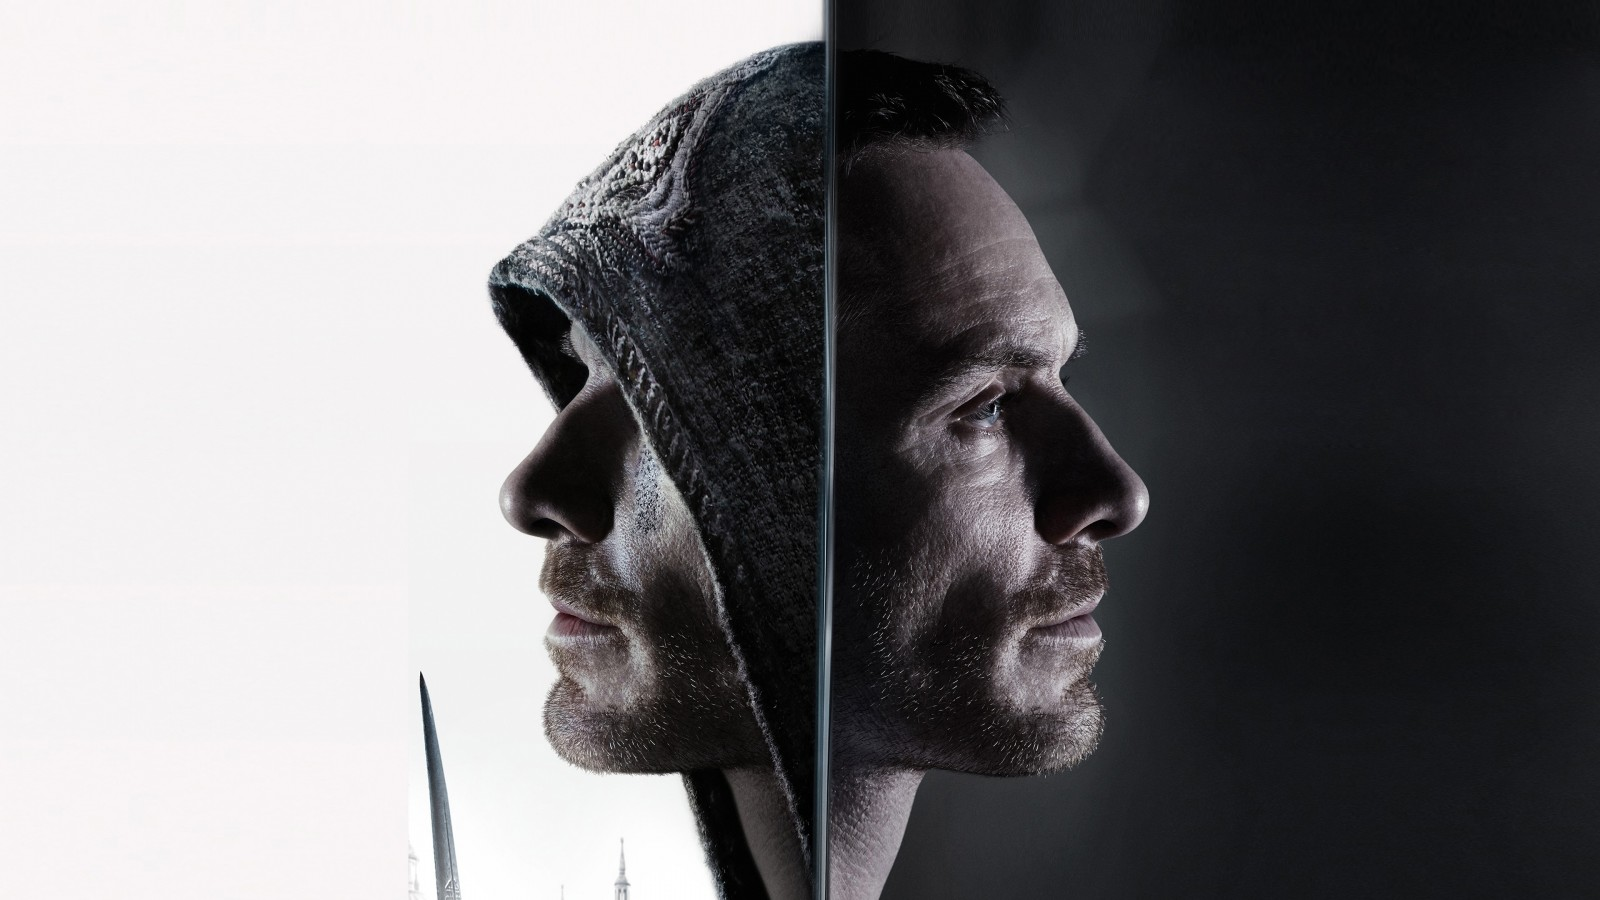 Liam Neeson Iphone Wallpaper Assassins Creed Michael Fassbender 4k Wallpapers Hd